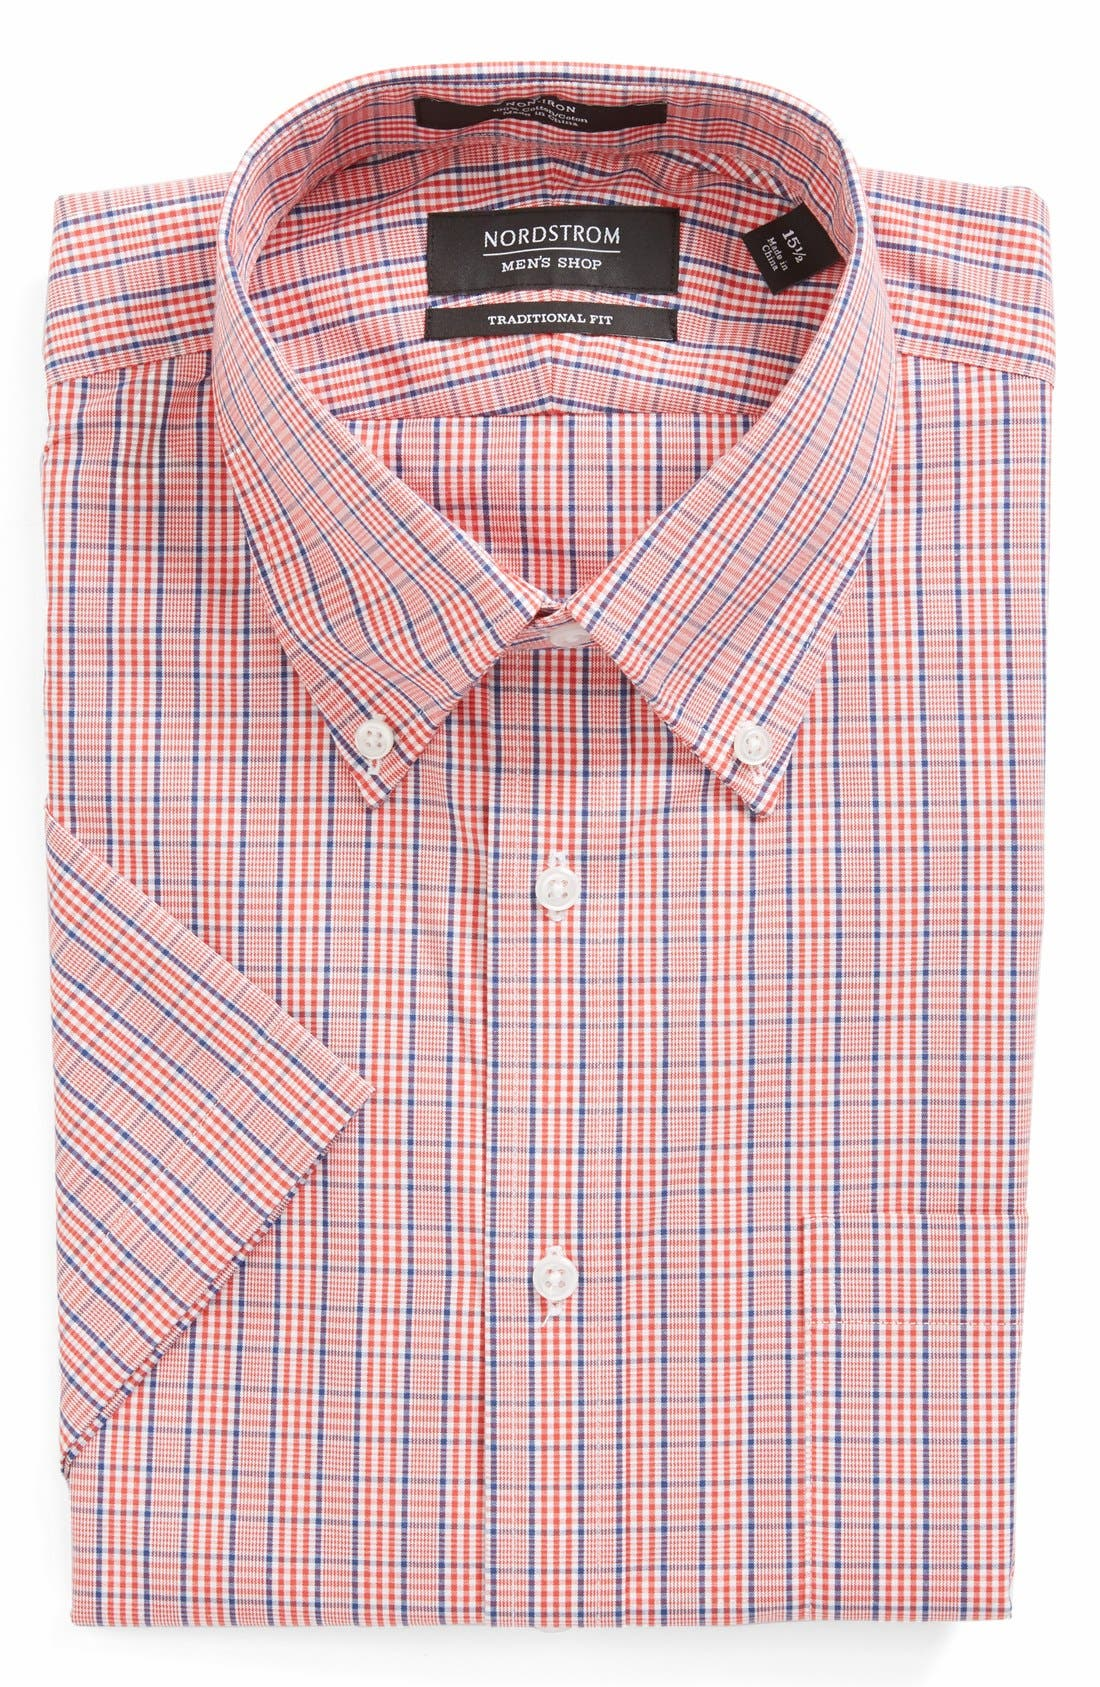 Main Image - Nordstrom Traditional Fit Non-Iron Short Sleeve Dress Shirt